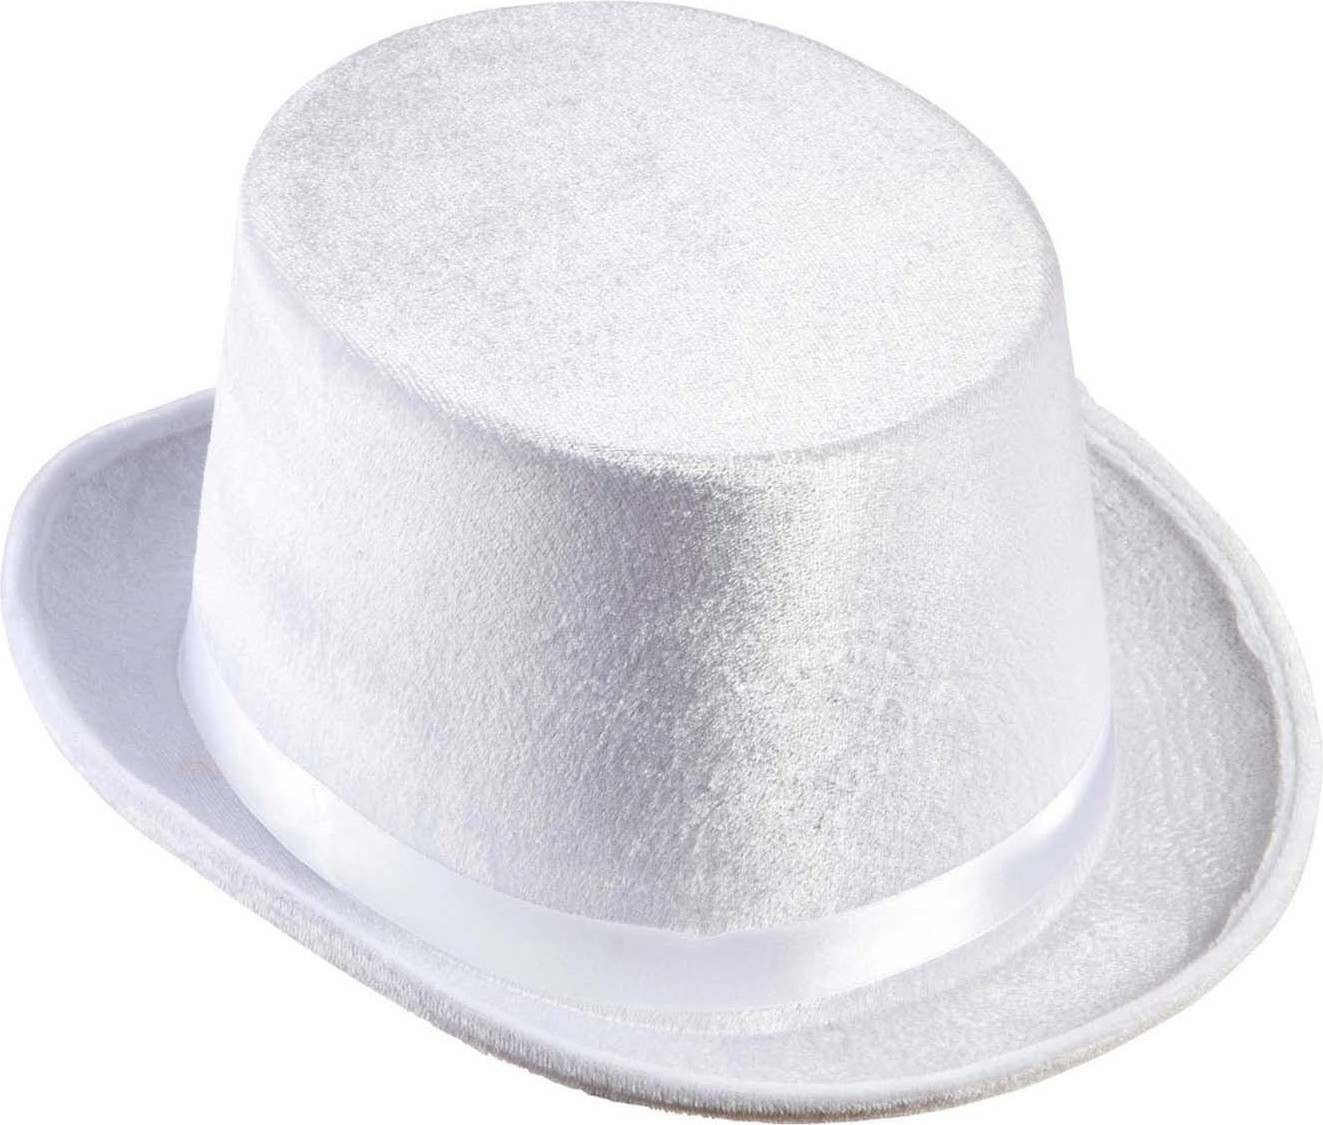 Mens Top Hat Velvet - White Hats - (White)